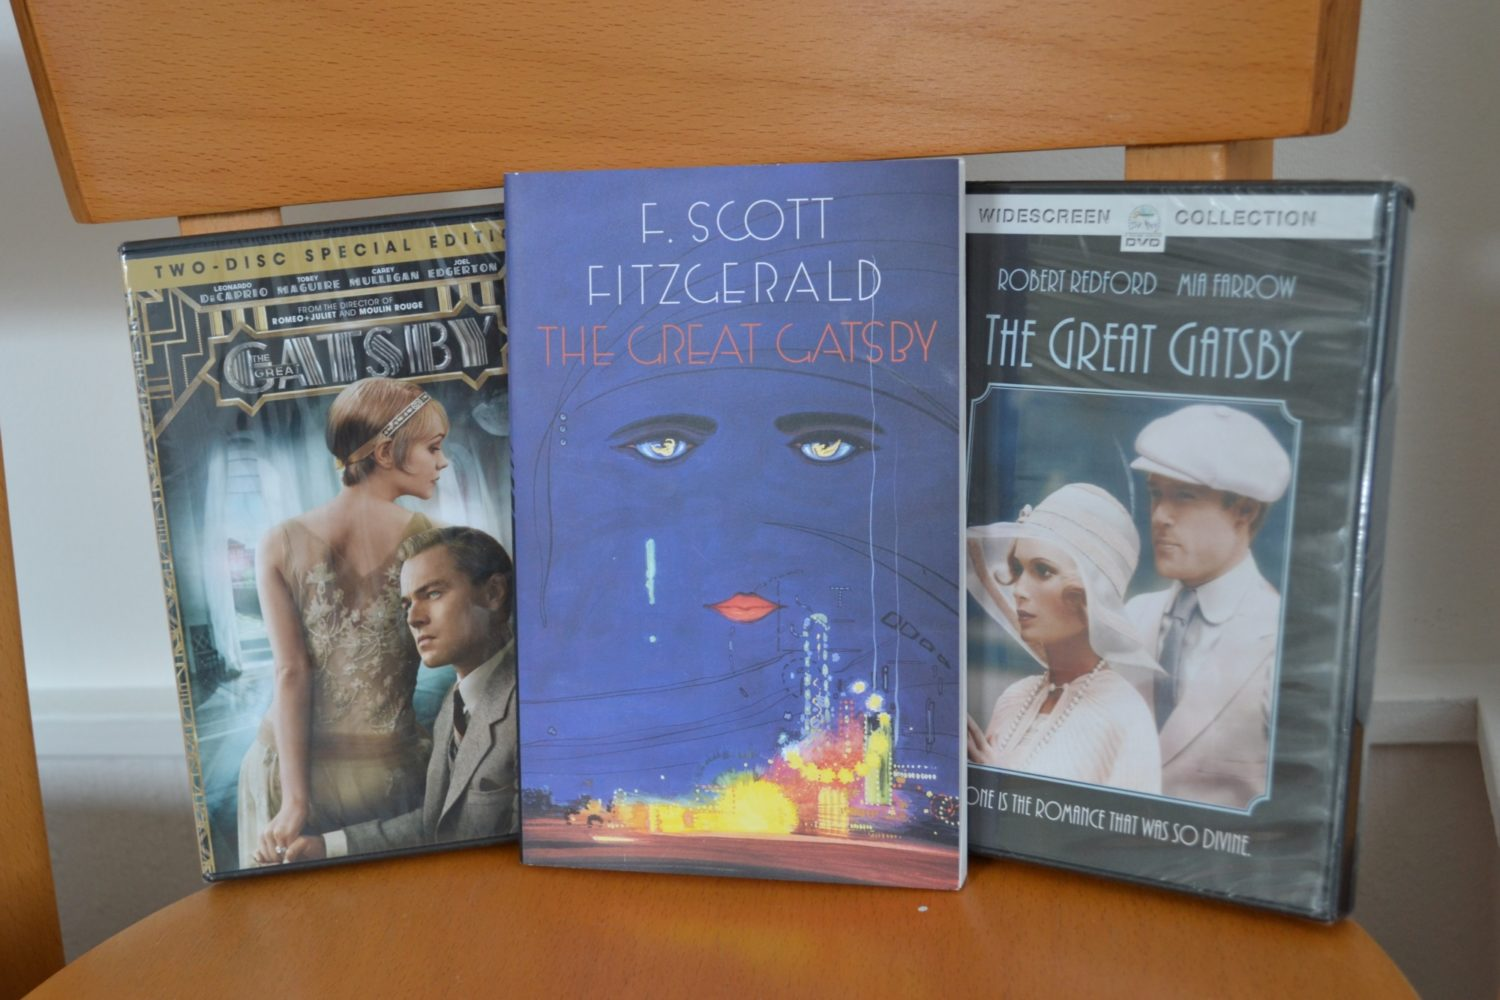 The Great Gatsby: The Book Vs. Movies